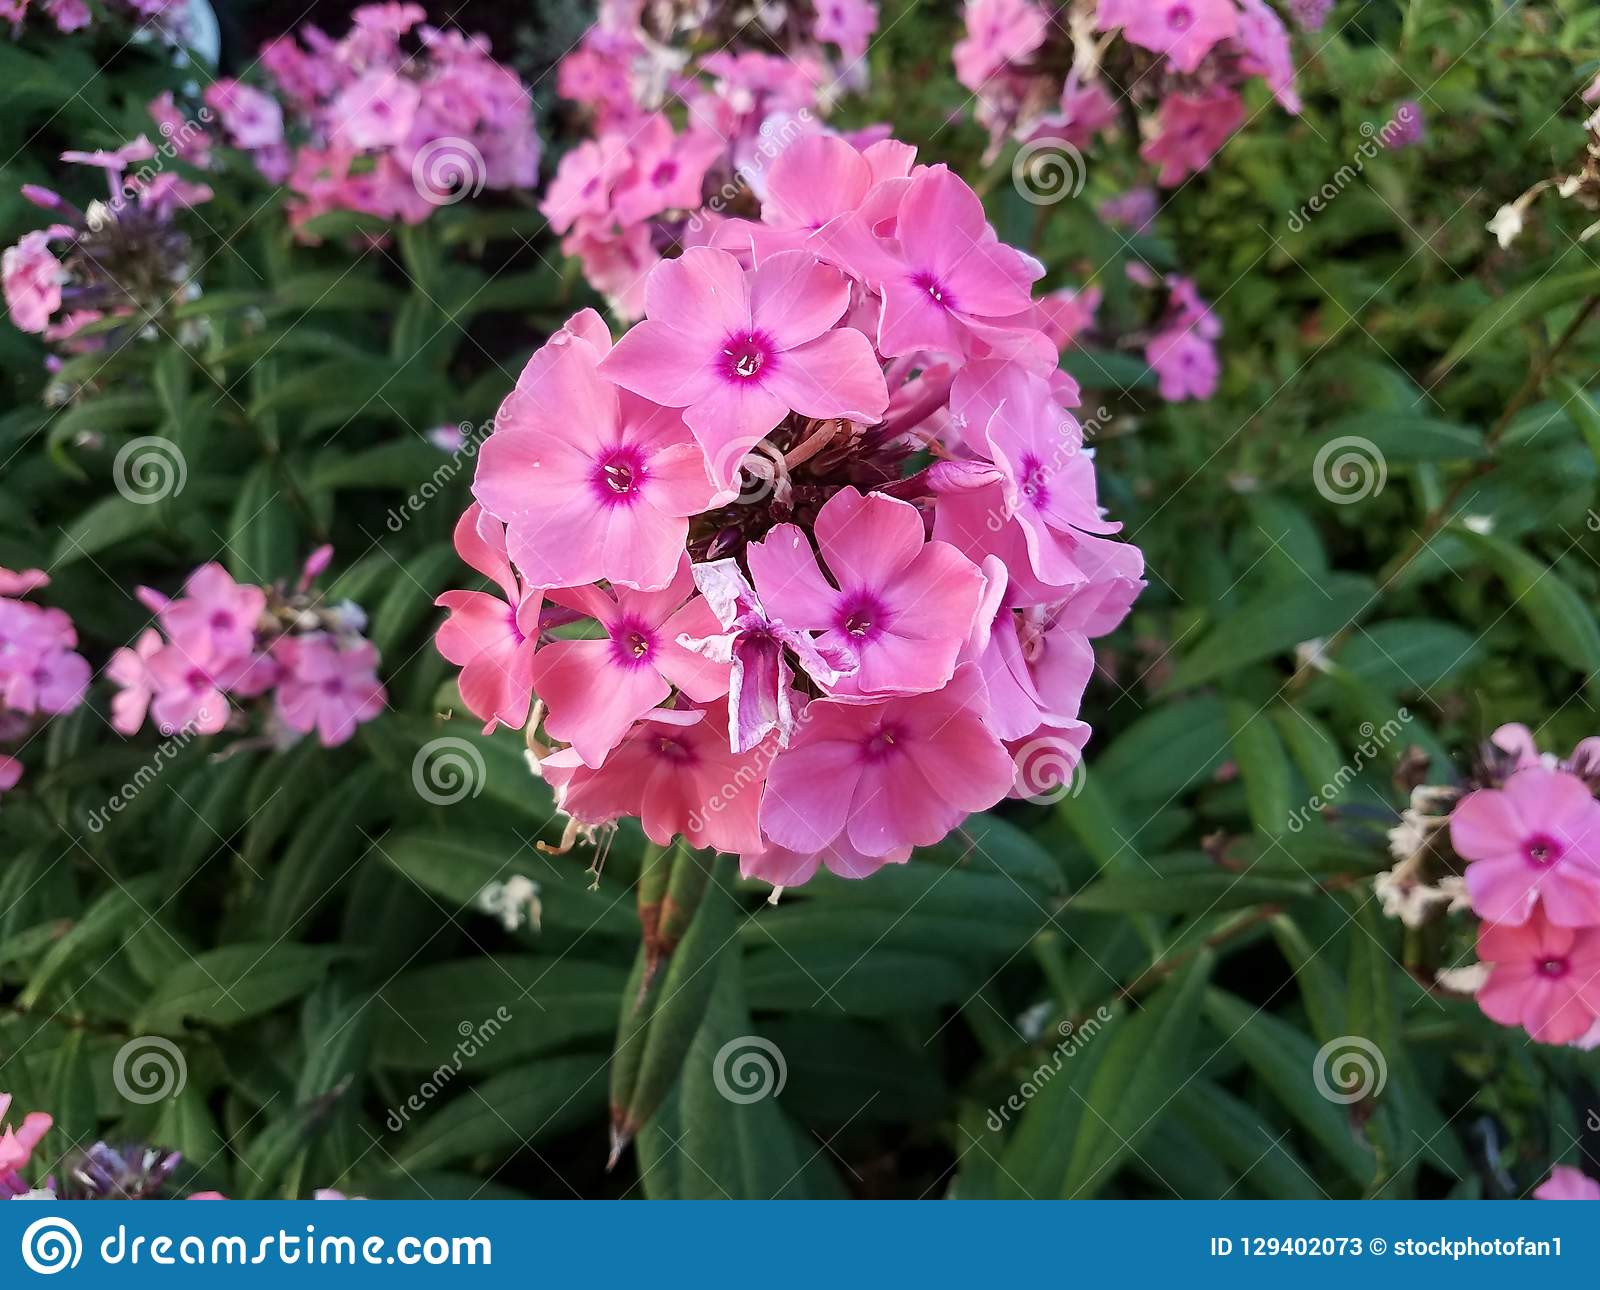 Plant with green leaves and pink flowers. A plant with green leaves and pink flowers stock photos